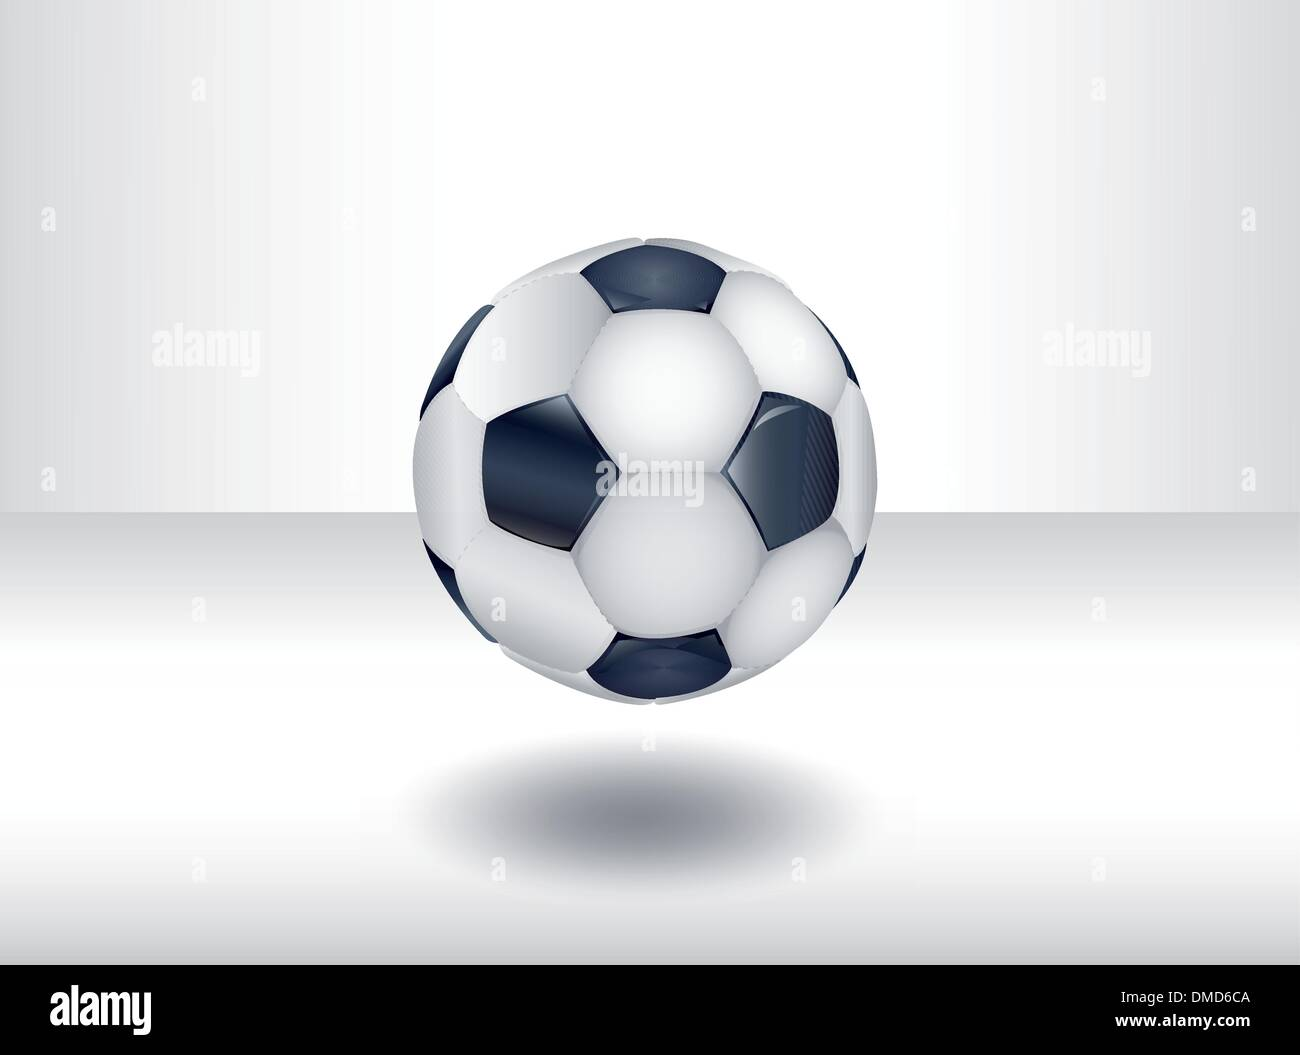 Isolated soccer ball. Ilustration 10 version - Stock Image